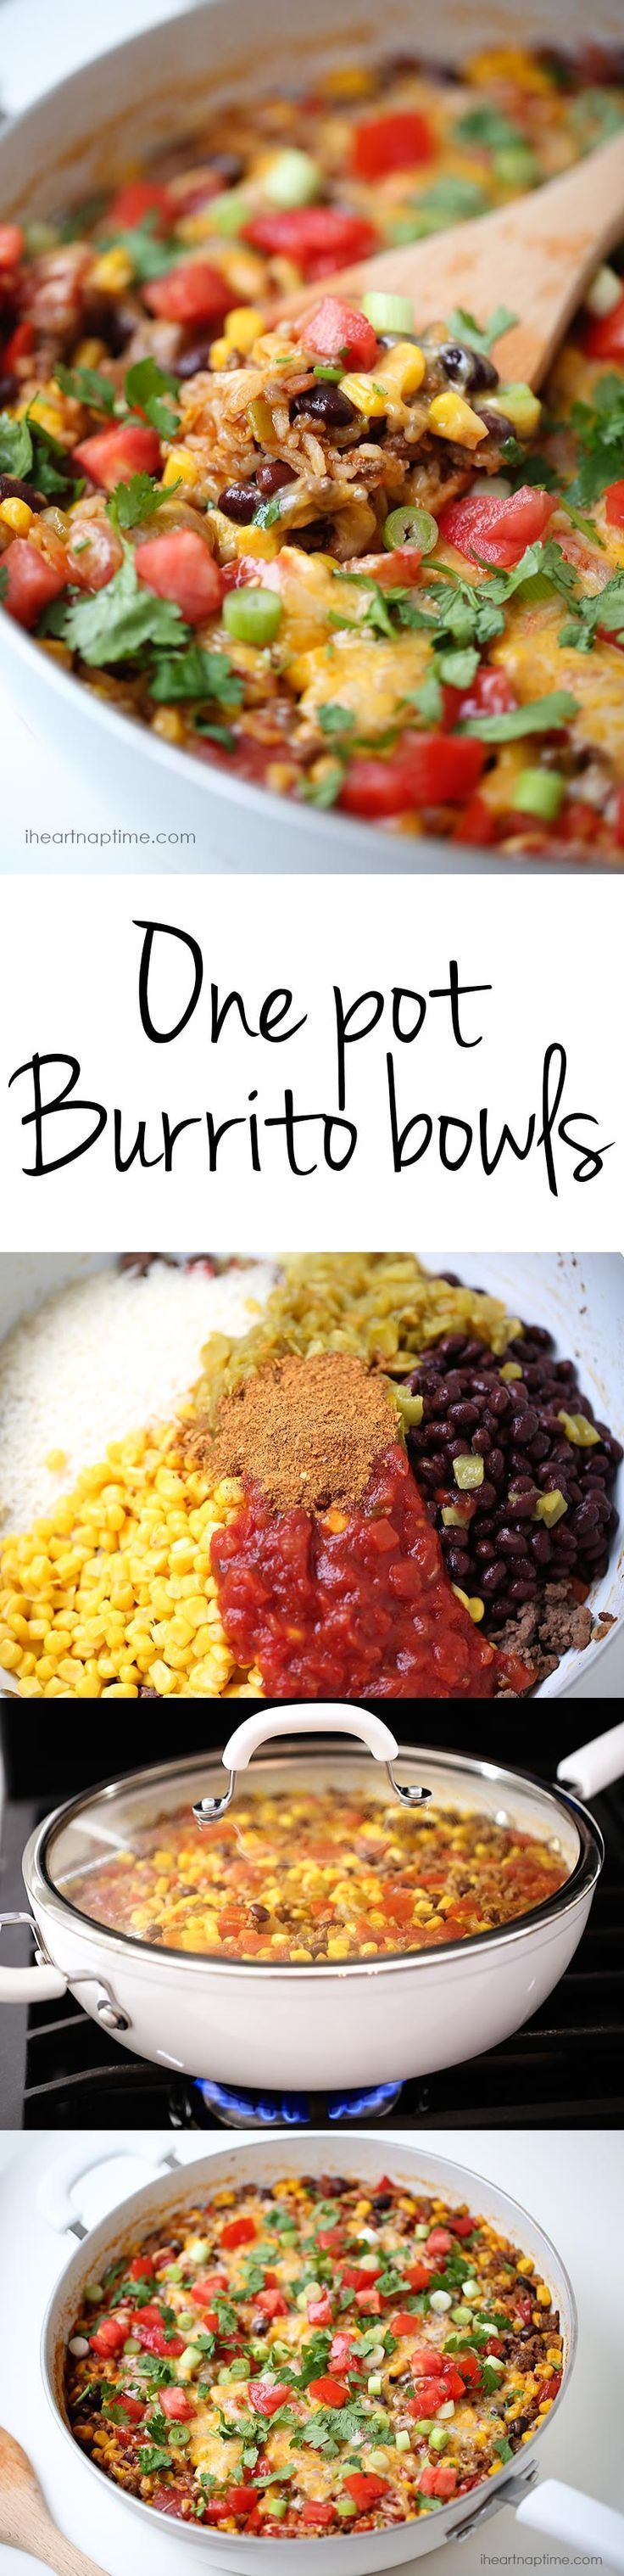 1916 best the best easy recipes images on pinterest cooking our family rating one pot burrito bowls recipe done in 30 minutes perfect for busy nights forumfinder Choice Image